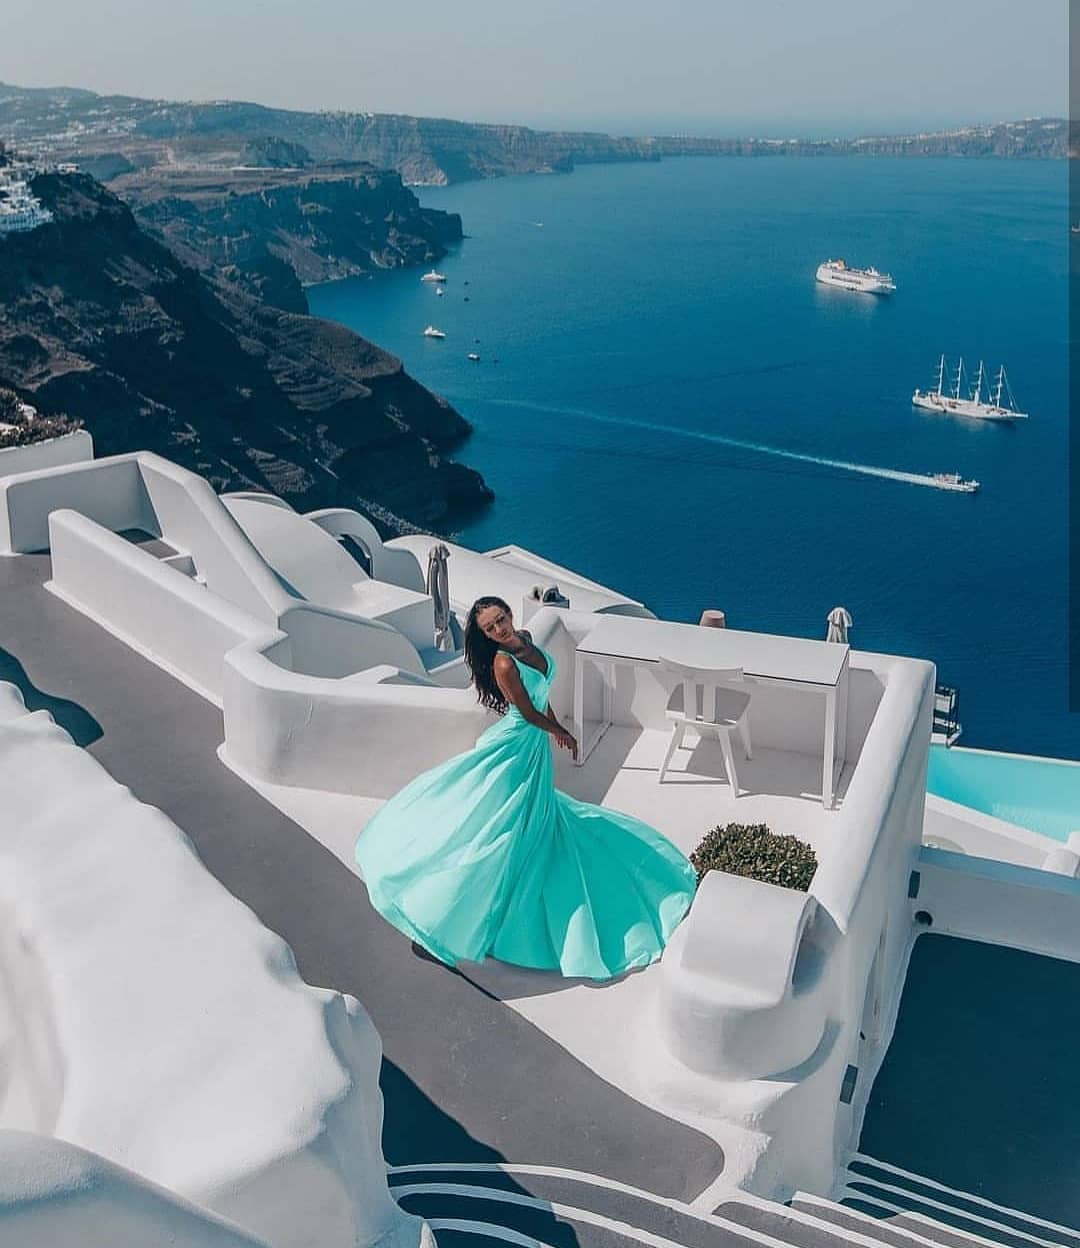 Neon Turquoise Maxi Gown For Santorini Trip 2019